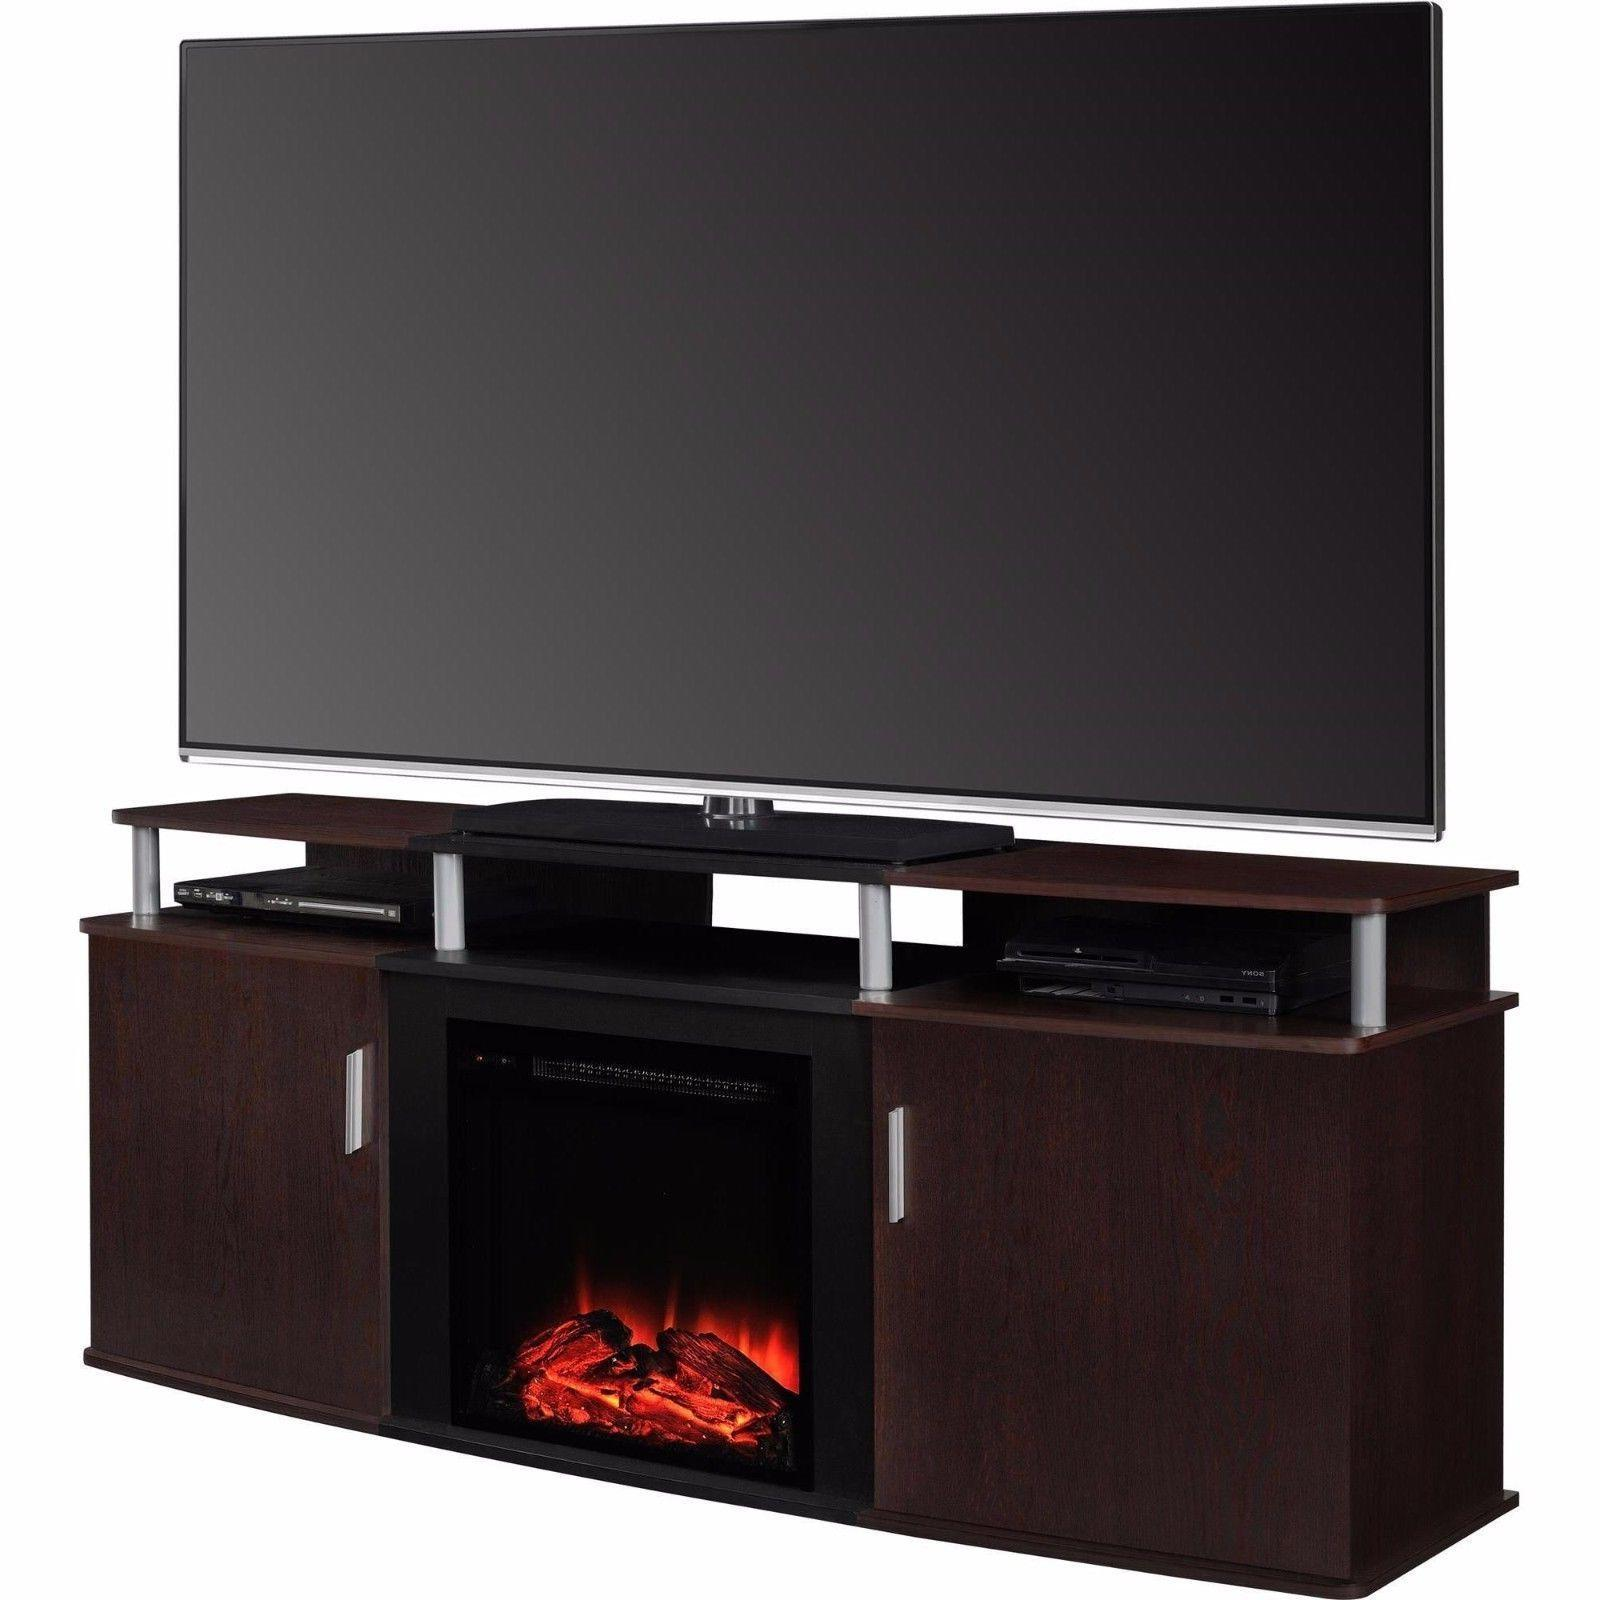 65 inch tv stand fireplace electric heater